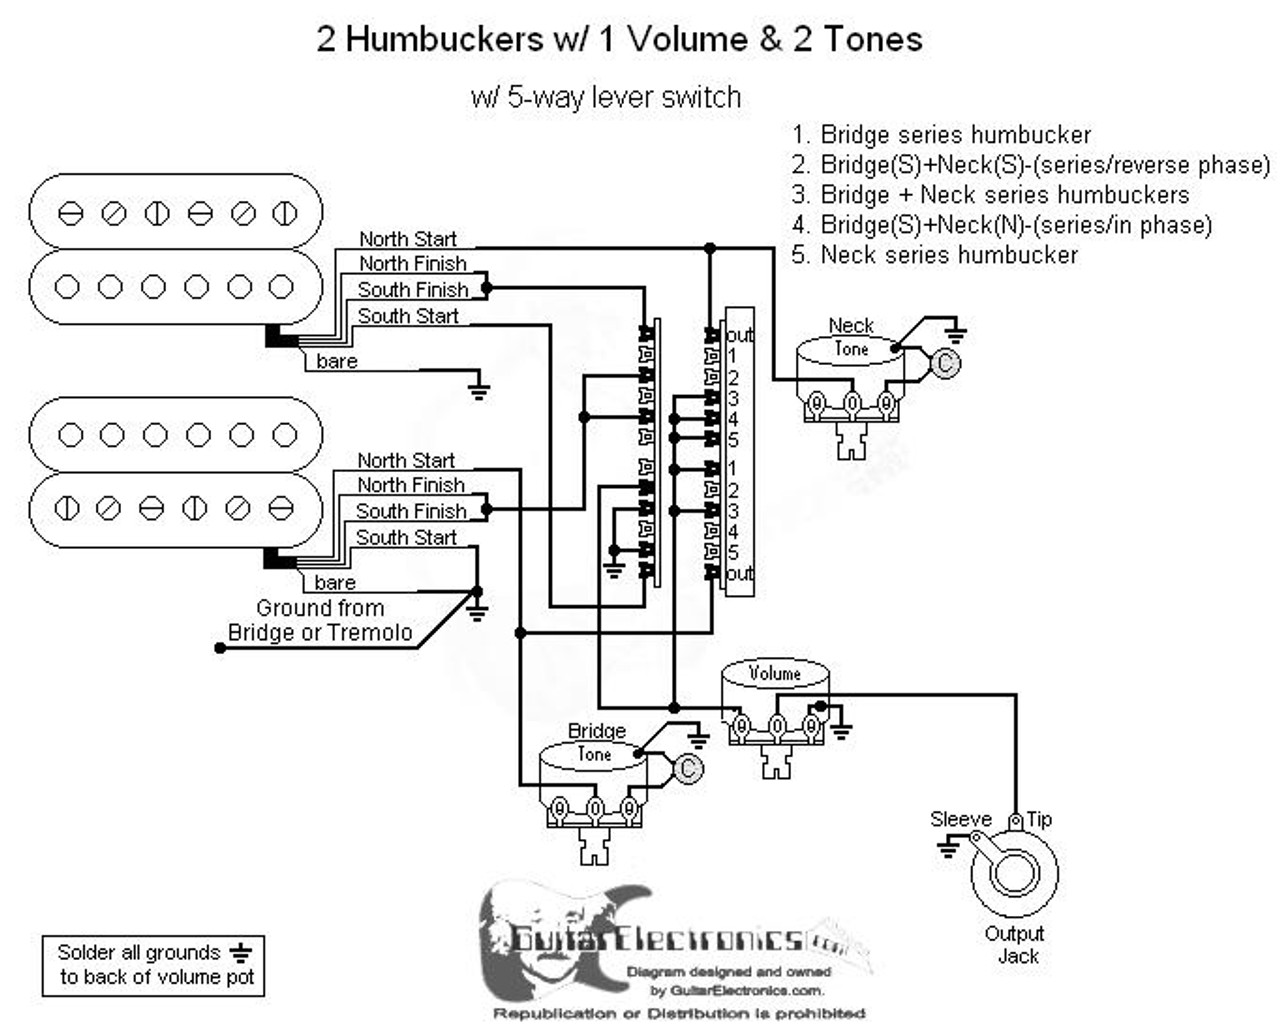 fender wiring schematic 2 pickups 1 volume 2 tone 5 way switch 2 humbuckers 5 way lever switch 1 volume 2 tone 03wd2hh5l12 03 46181 1470694495 jpg c  [ 1280 x 1036 Pixel ]